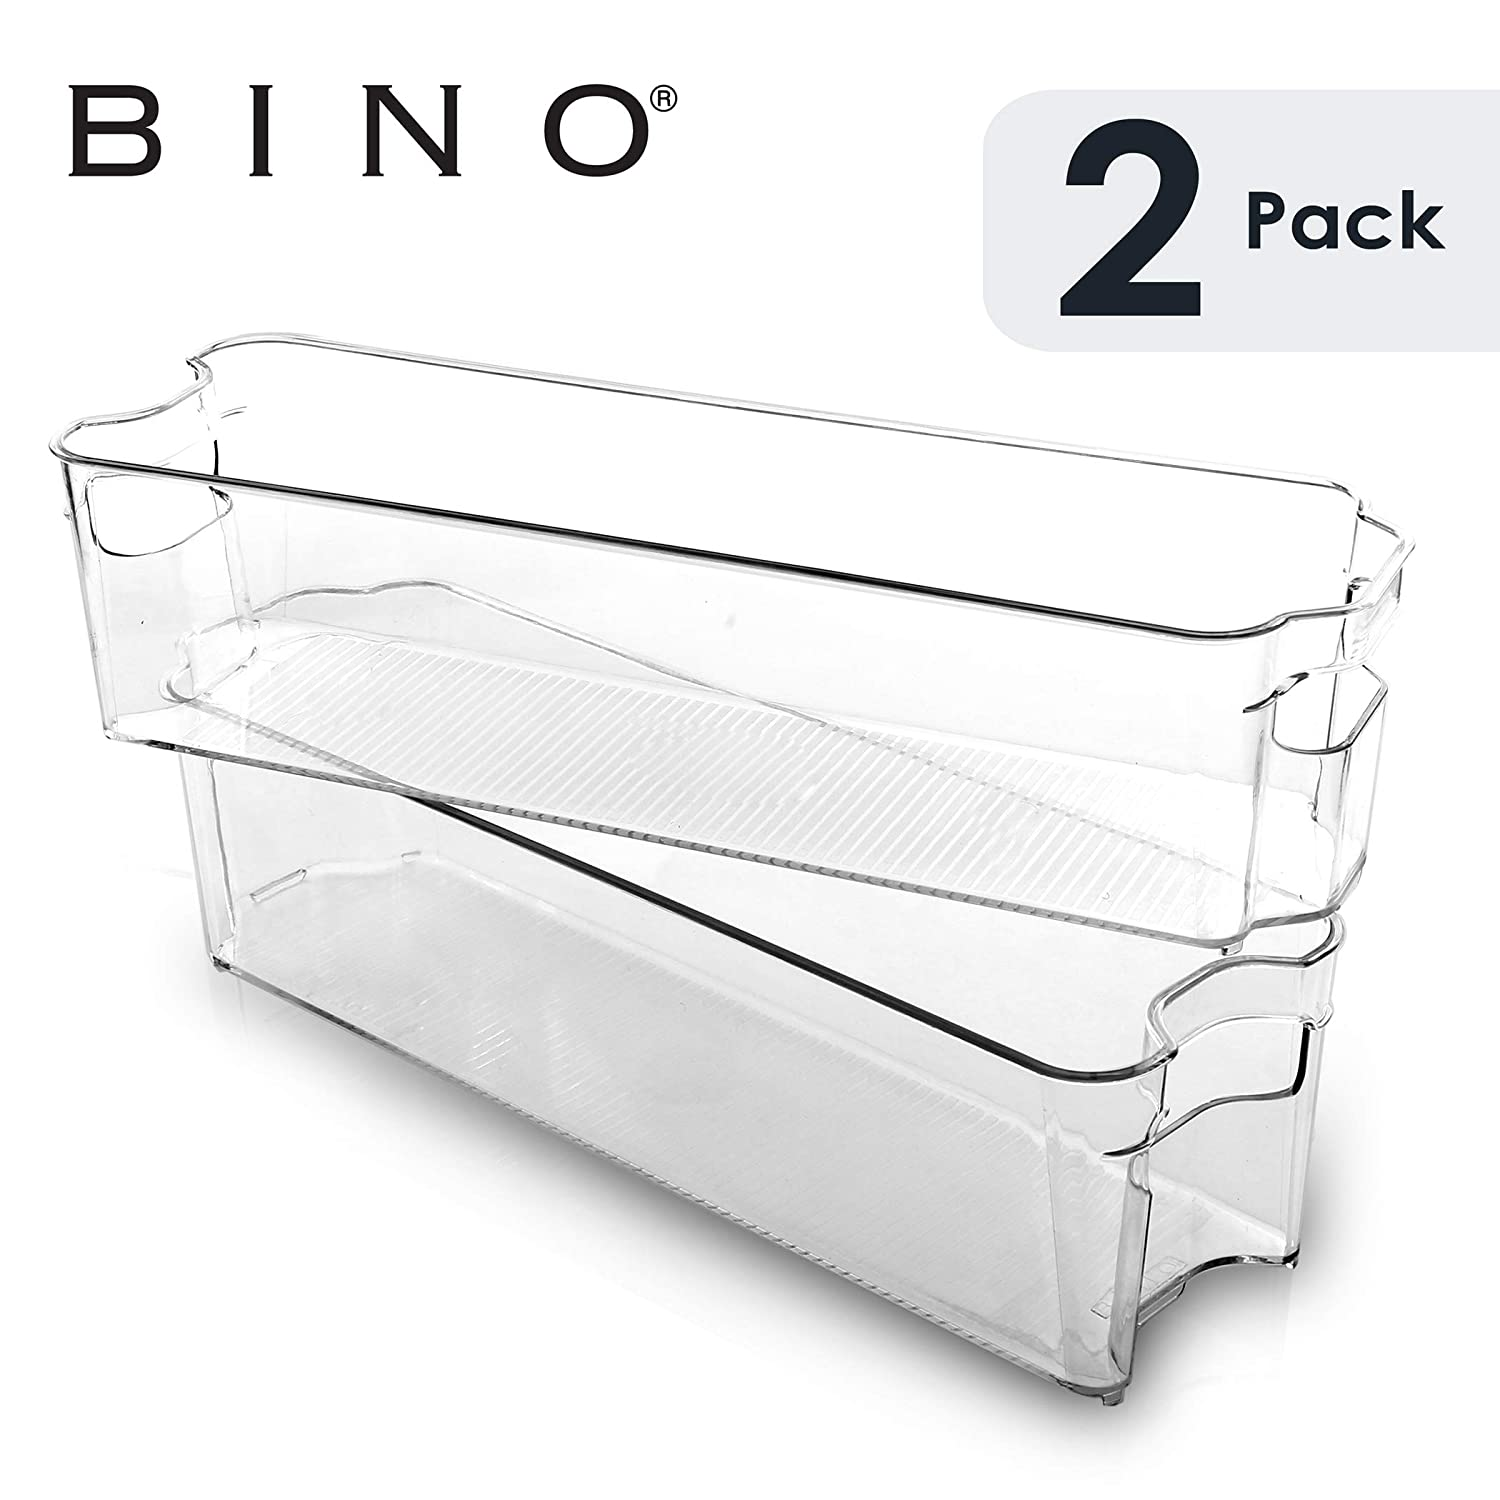 BINO Stackable Plastic Organizer Storage Bins, Small - 2 Pack - Pantry Organization and Storage Refrigerator Organizer Bins Fridge Organizer Freezer Organizer Pantry Organizer Pantry Storage